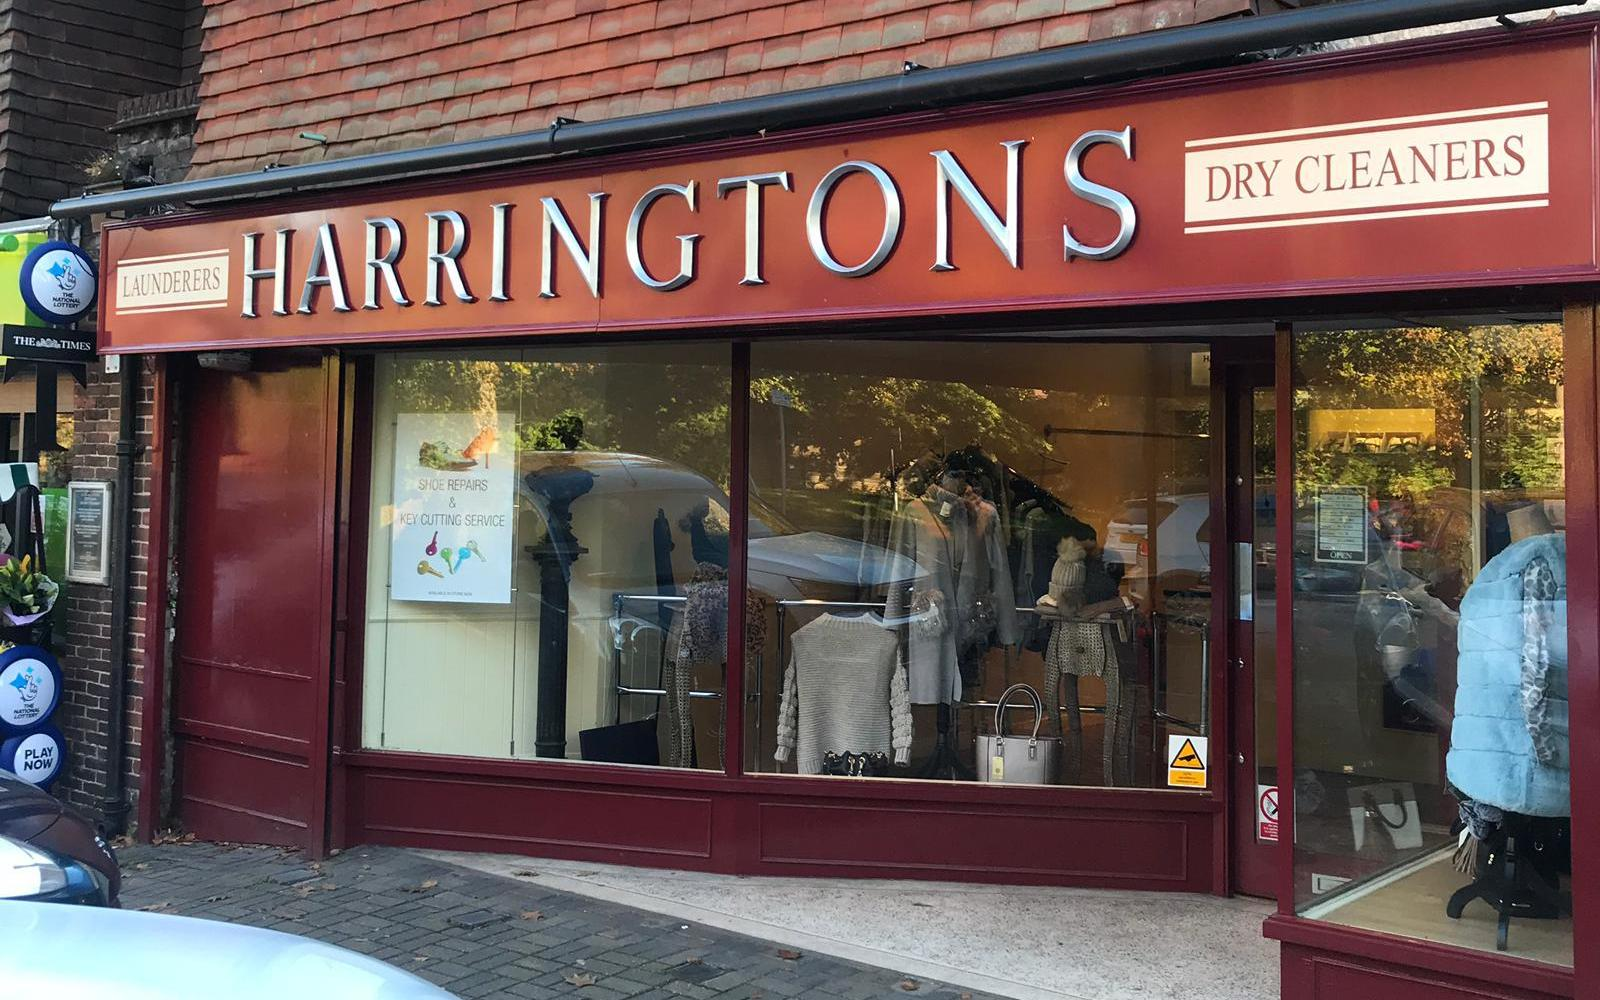 Harringtons Drycleaners